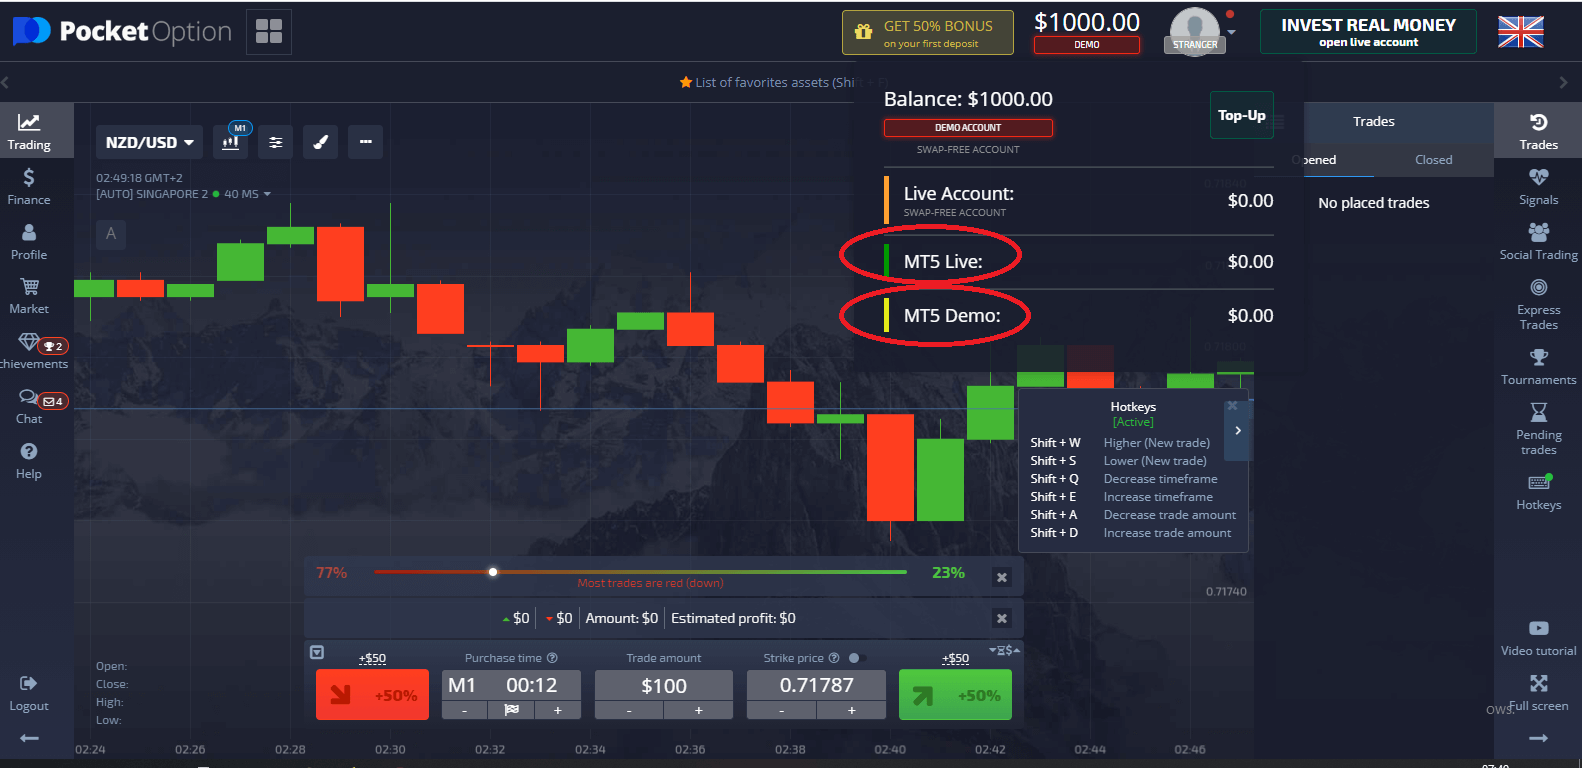 How to Start Trading at Pocket Option for Beginners